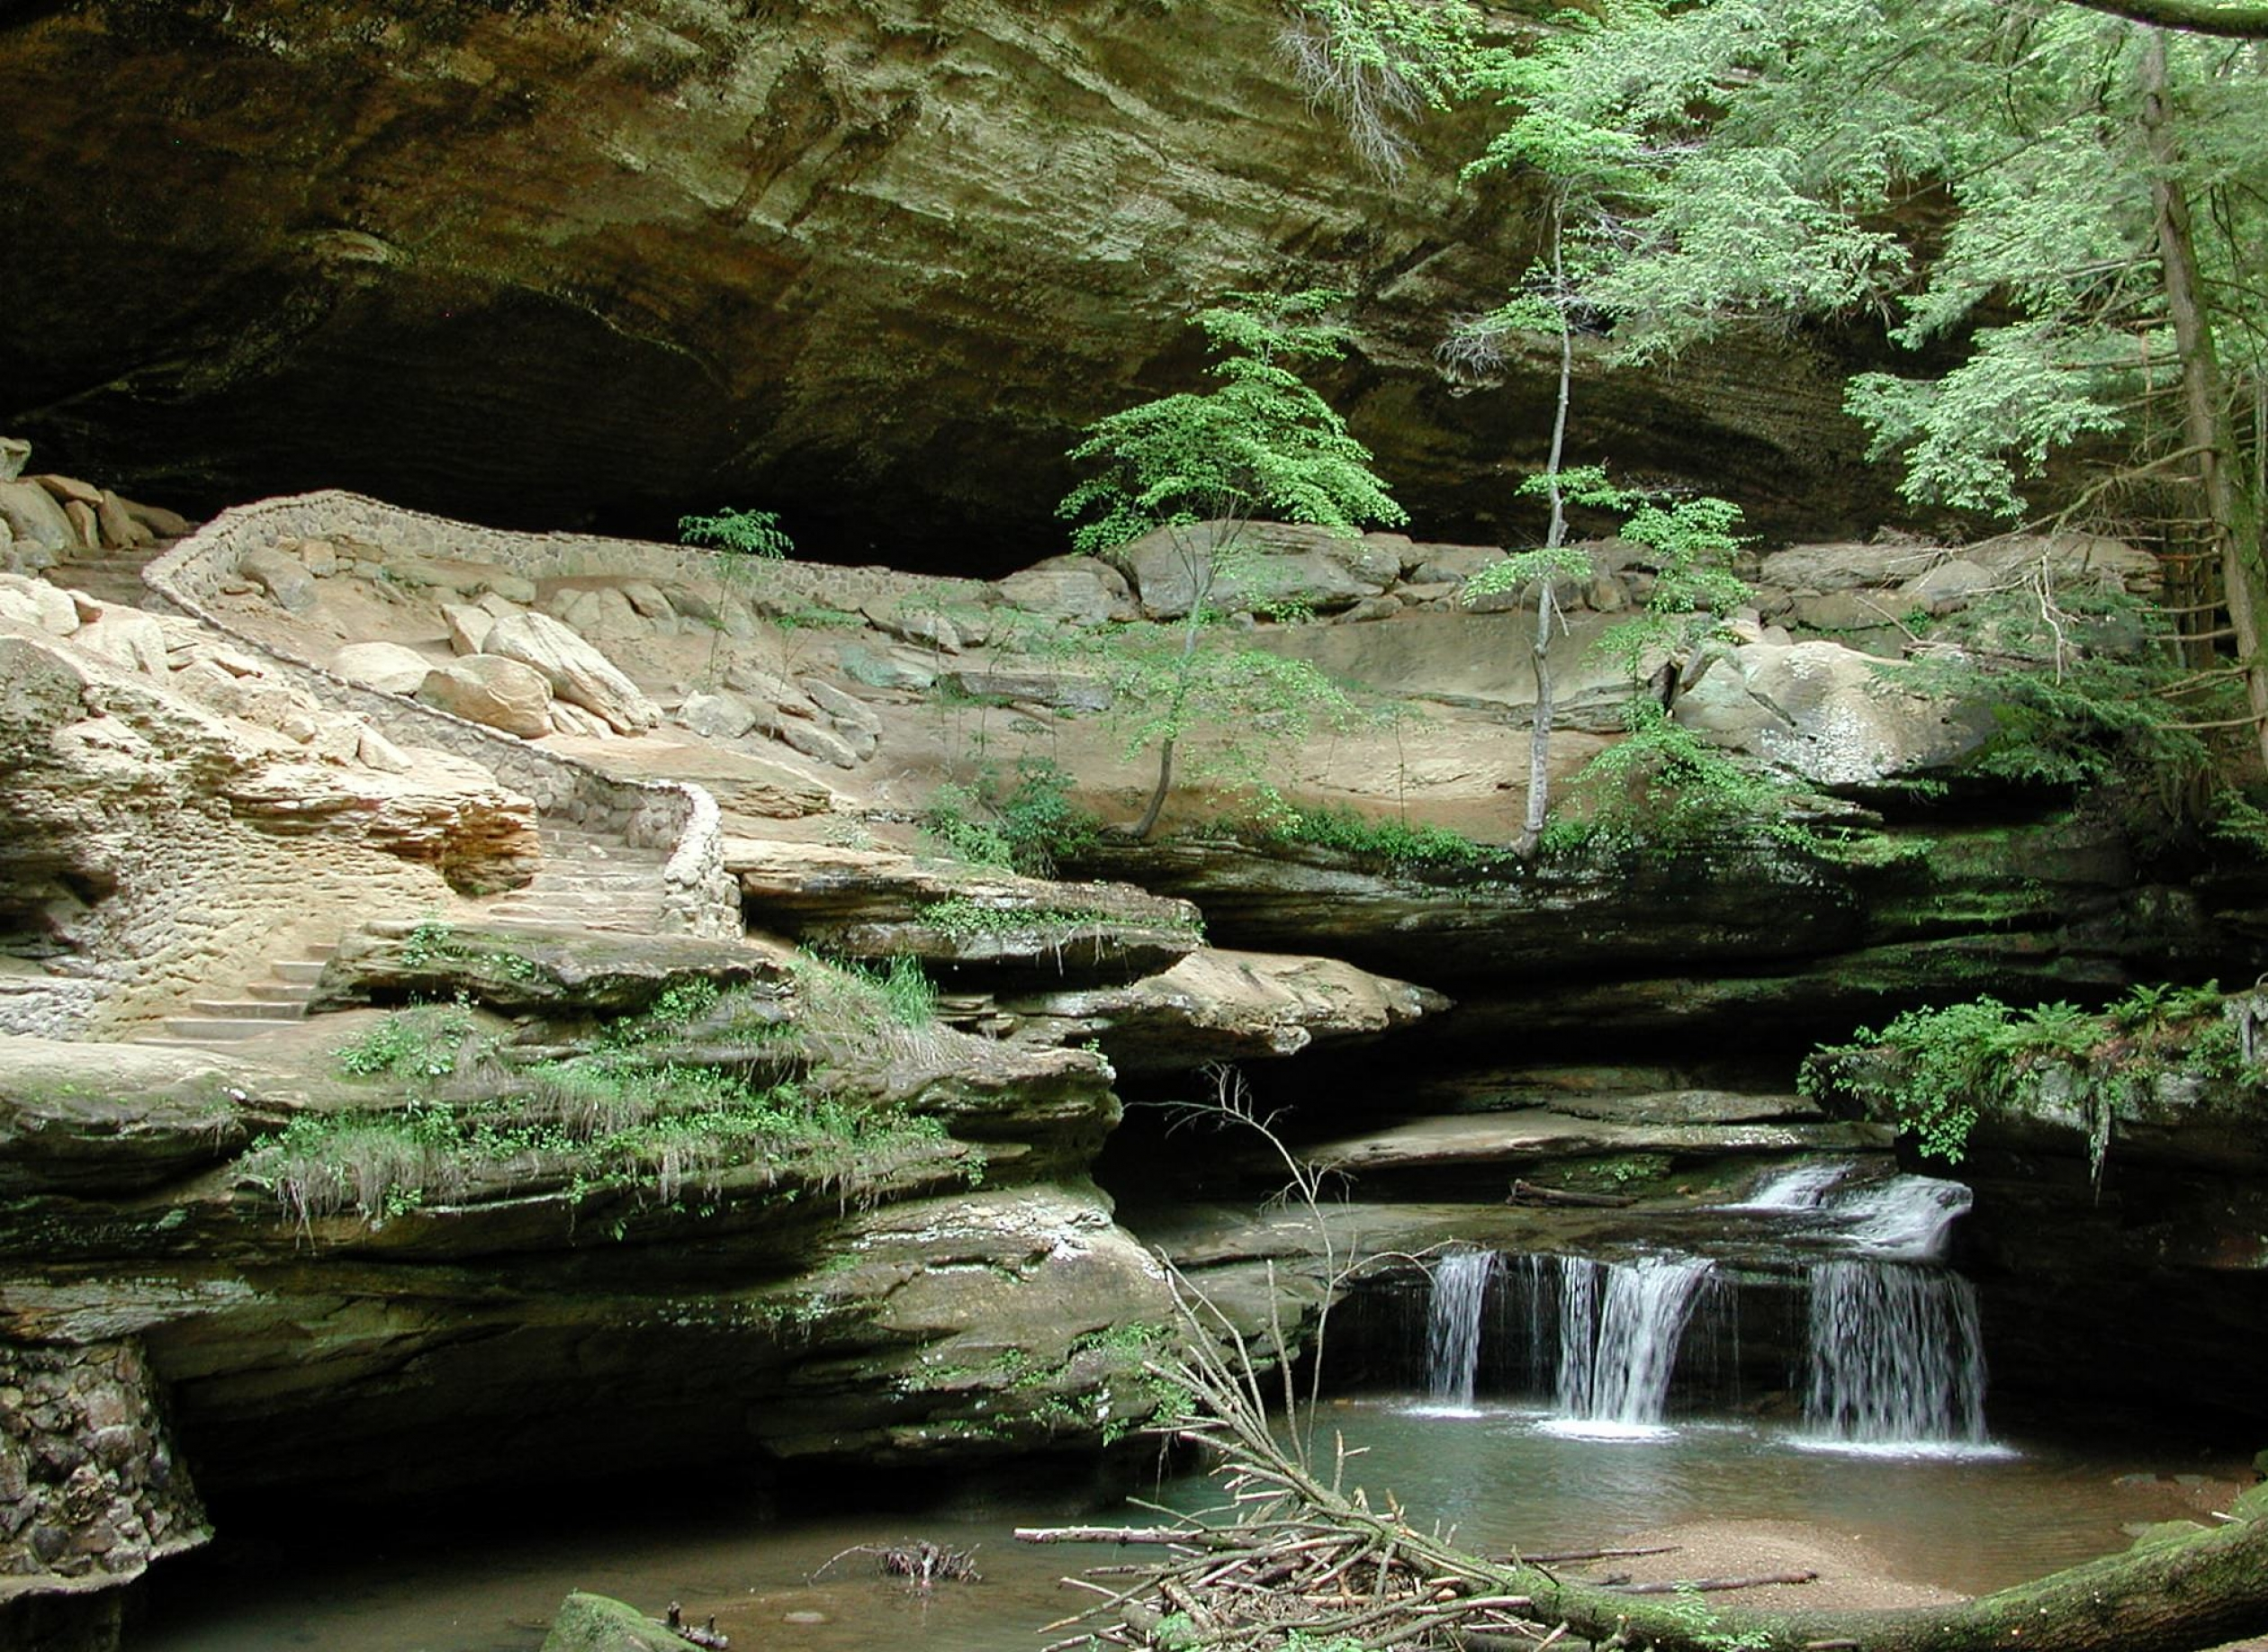 Small waterfall along a river srounded by sand-colored cliffs and green ferns in Ohio along the North Country National Scenic Trail